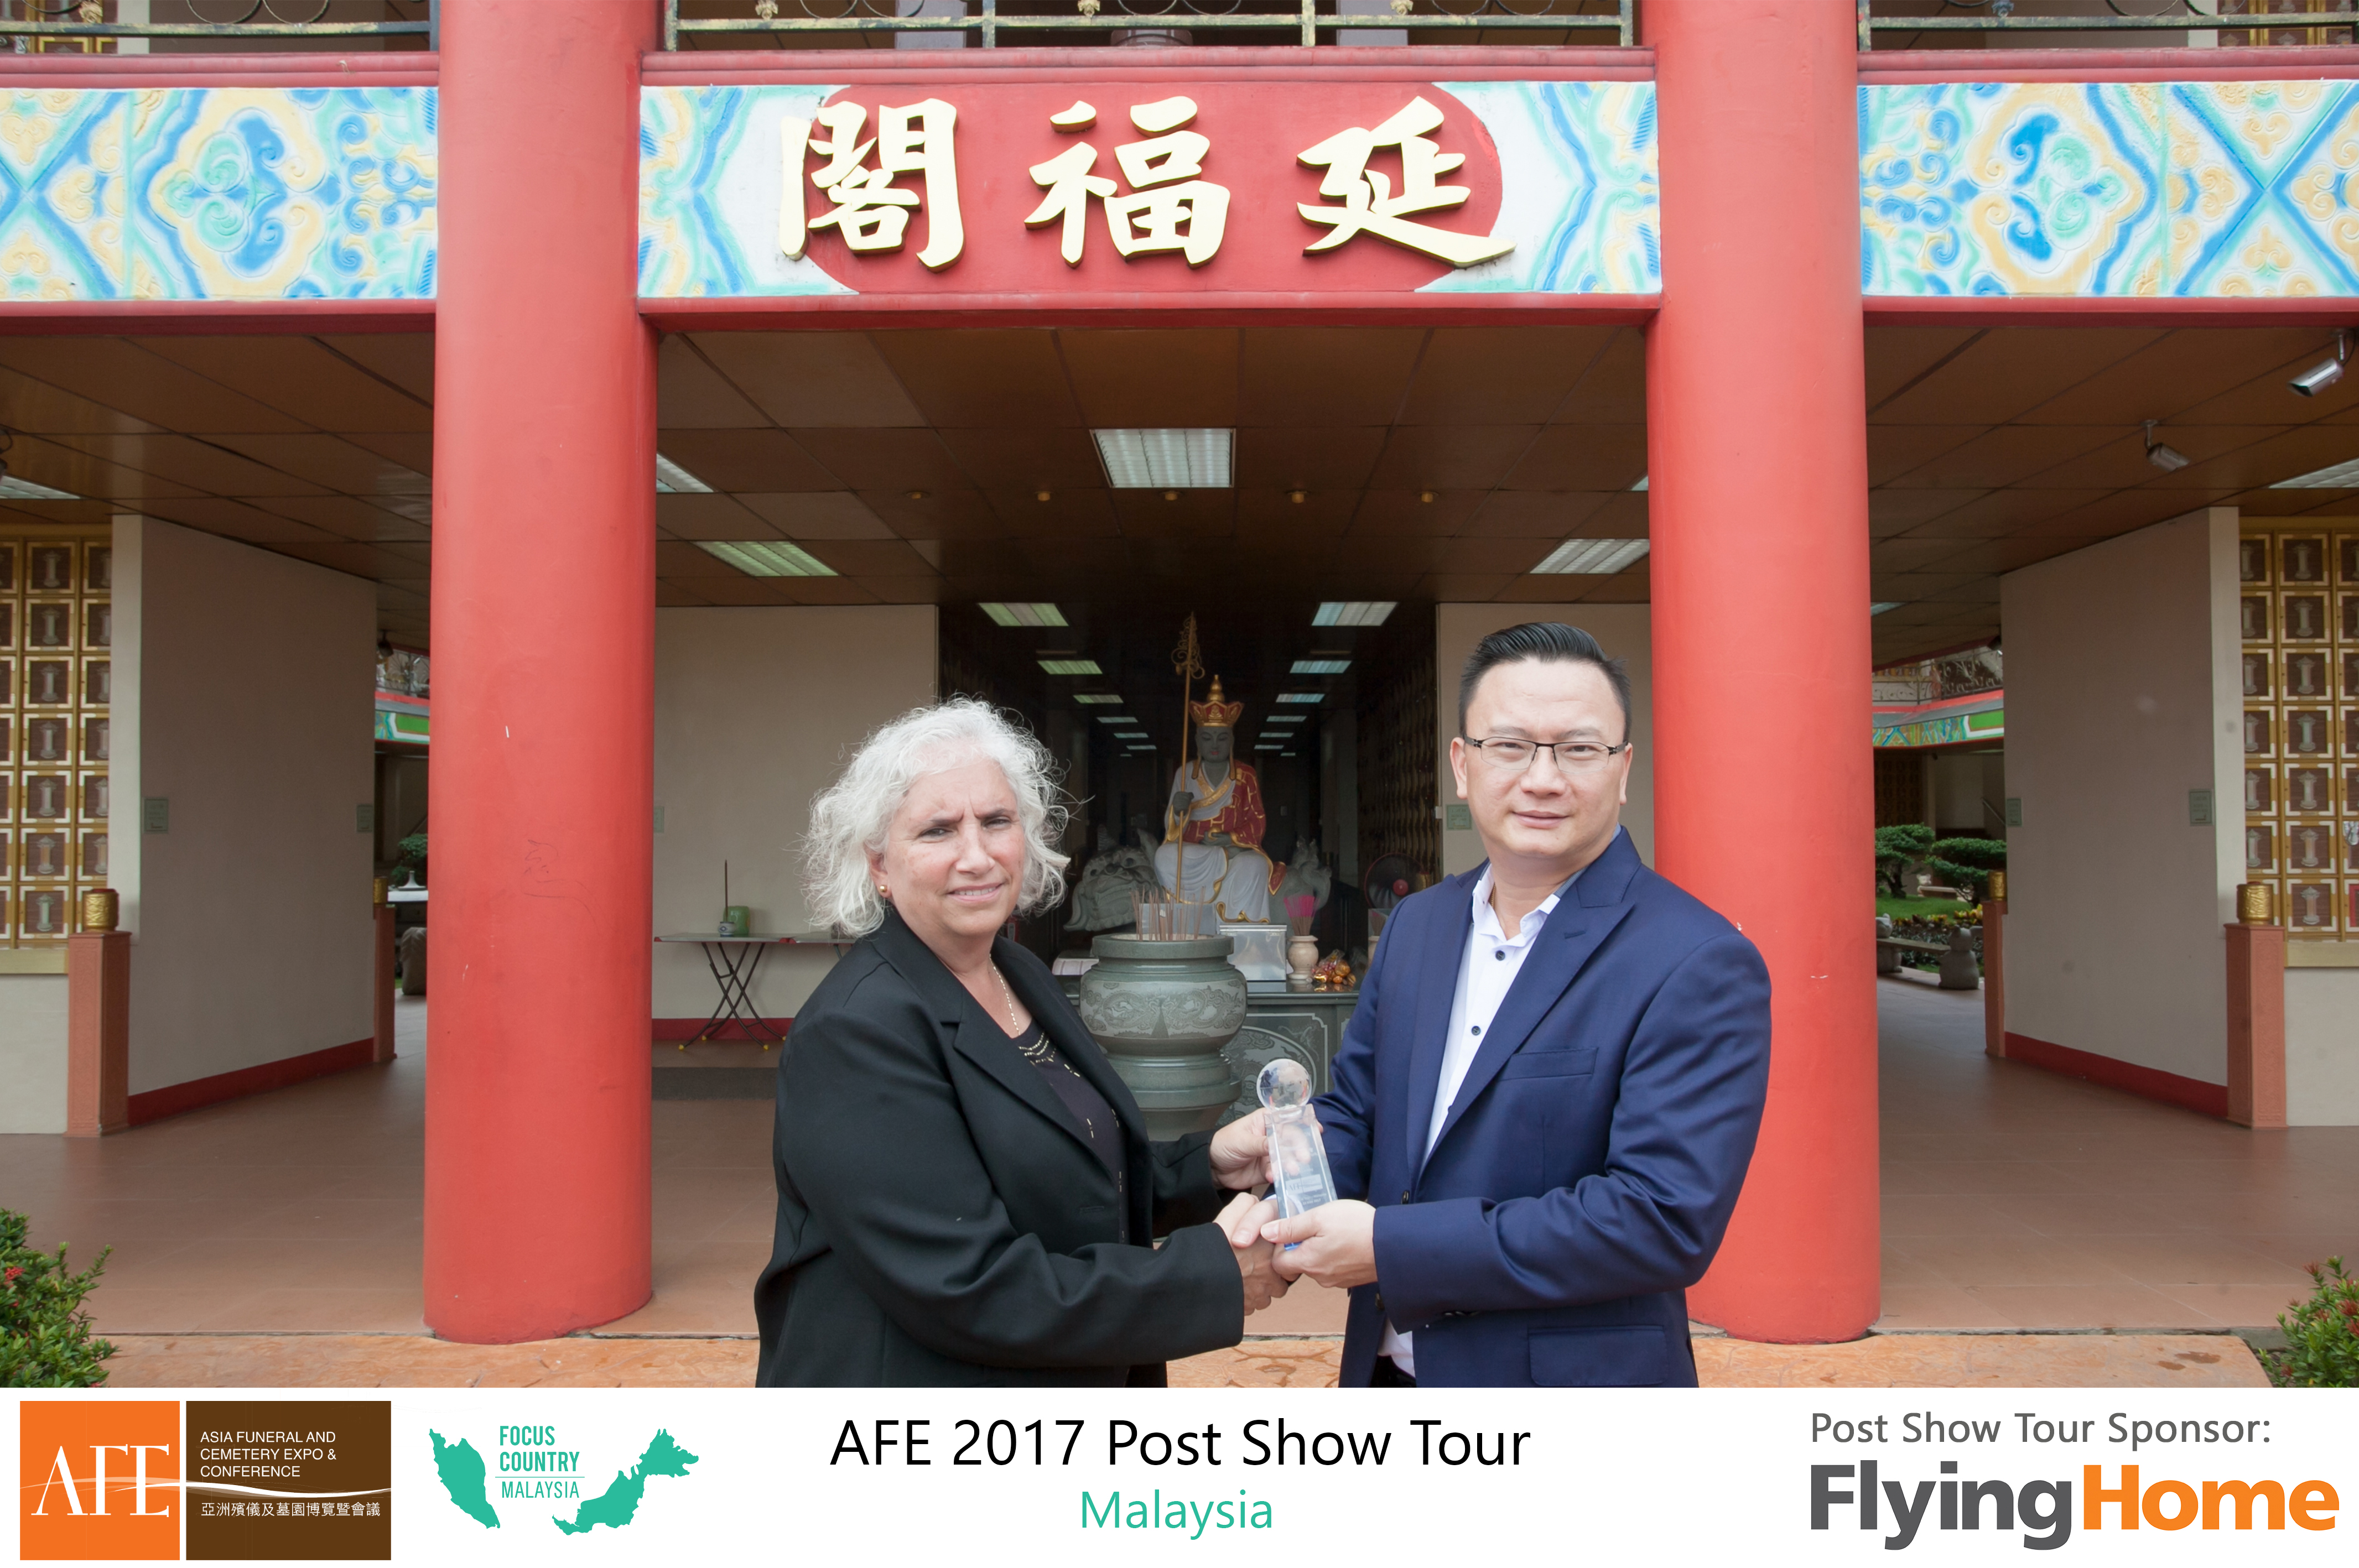 AFE Post Show Tour 2017 Day 4 - 16